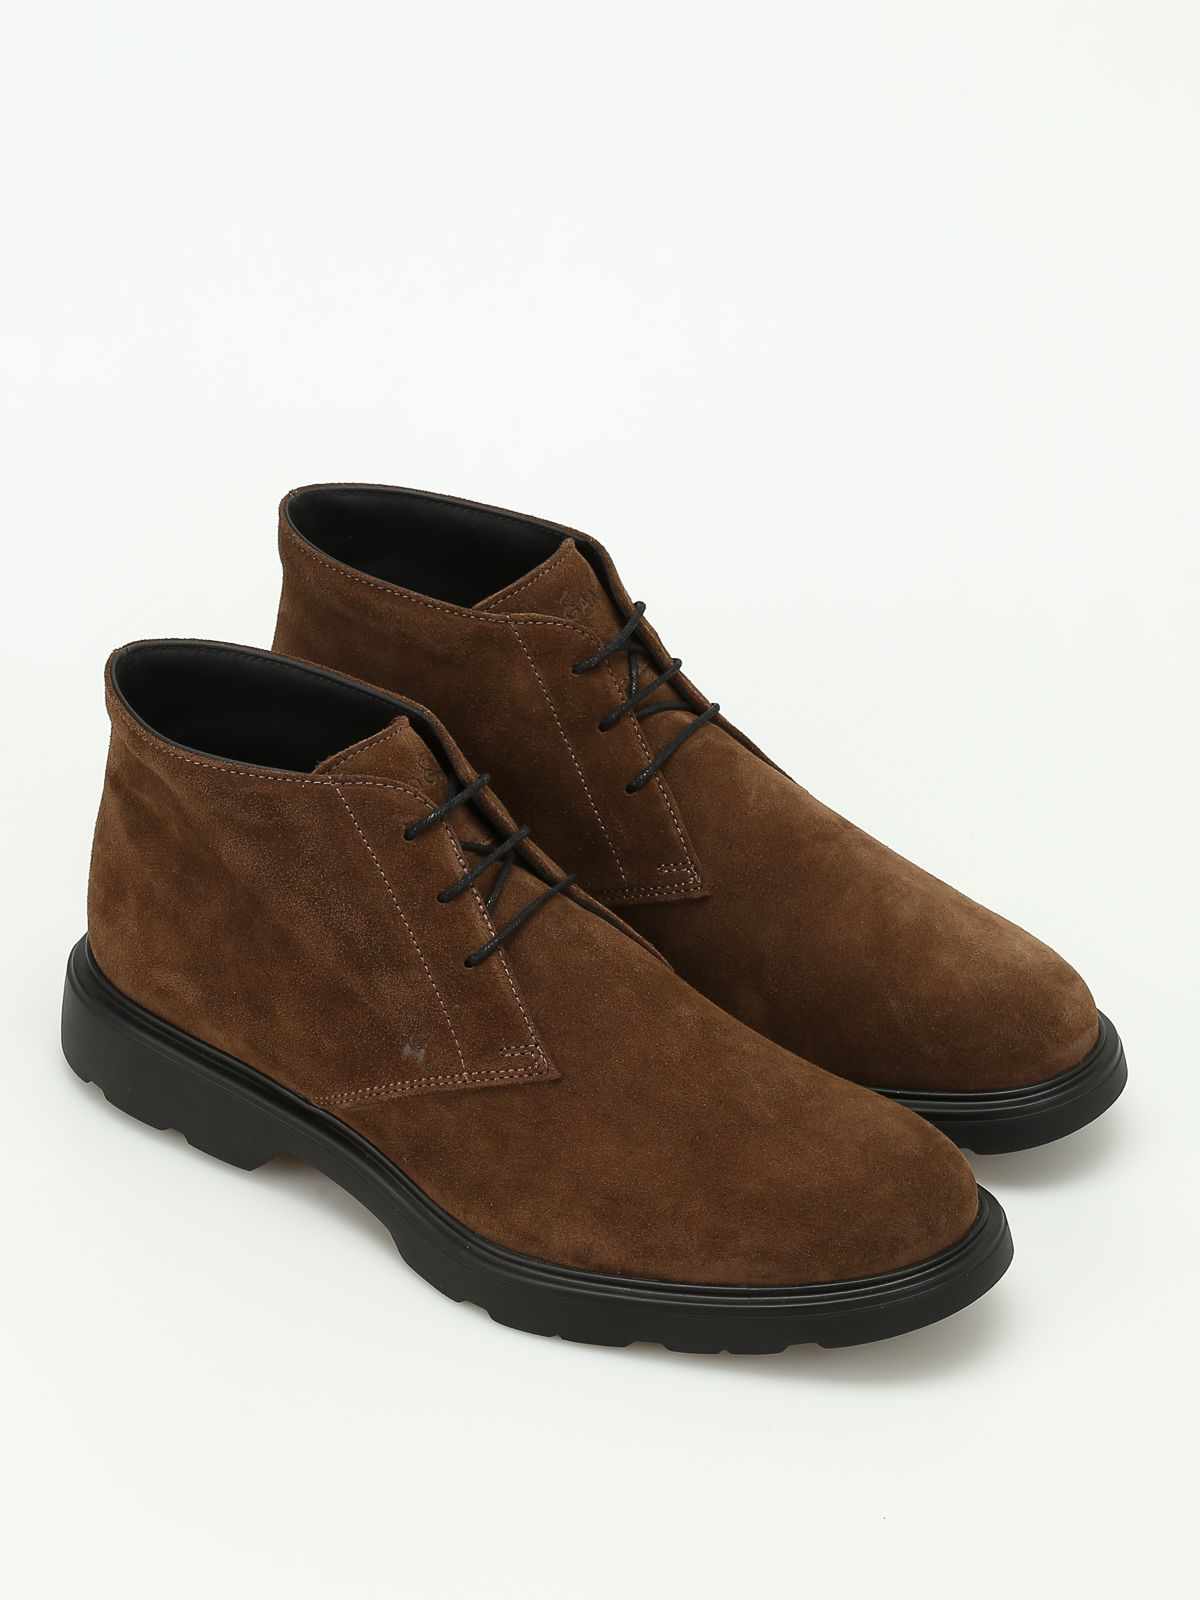 Hogan H304 New Route Suede Ankle Boots In Dark Grey | ModeSens